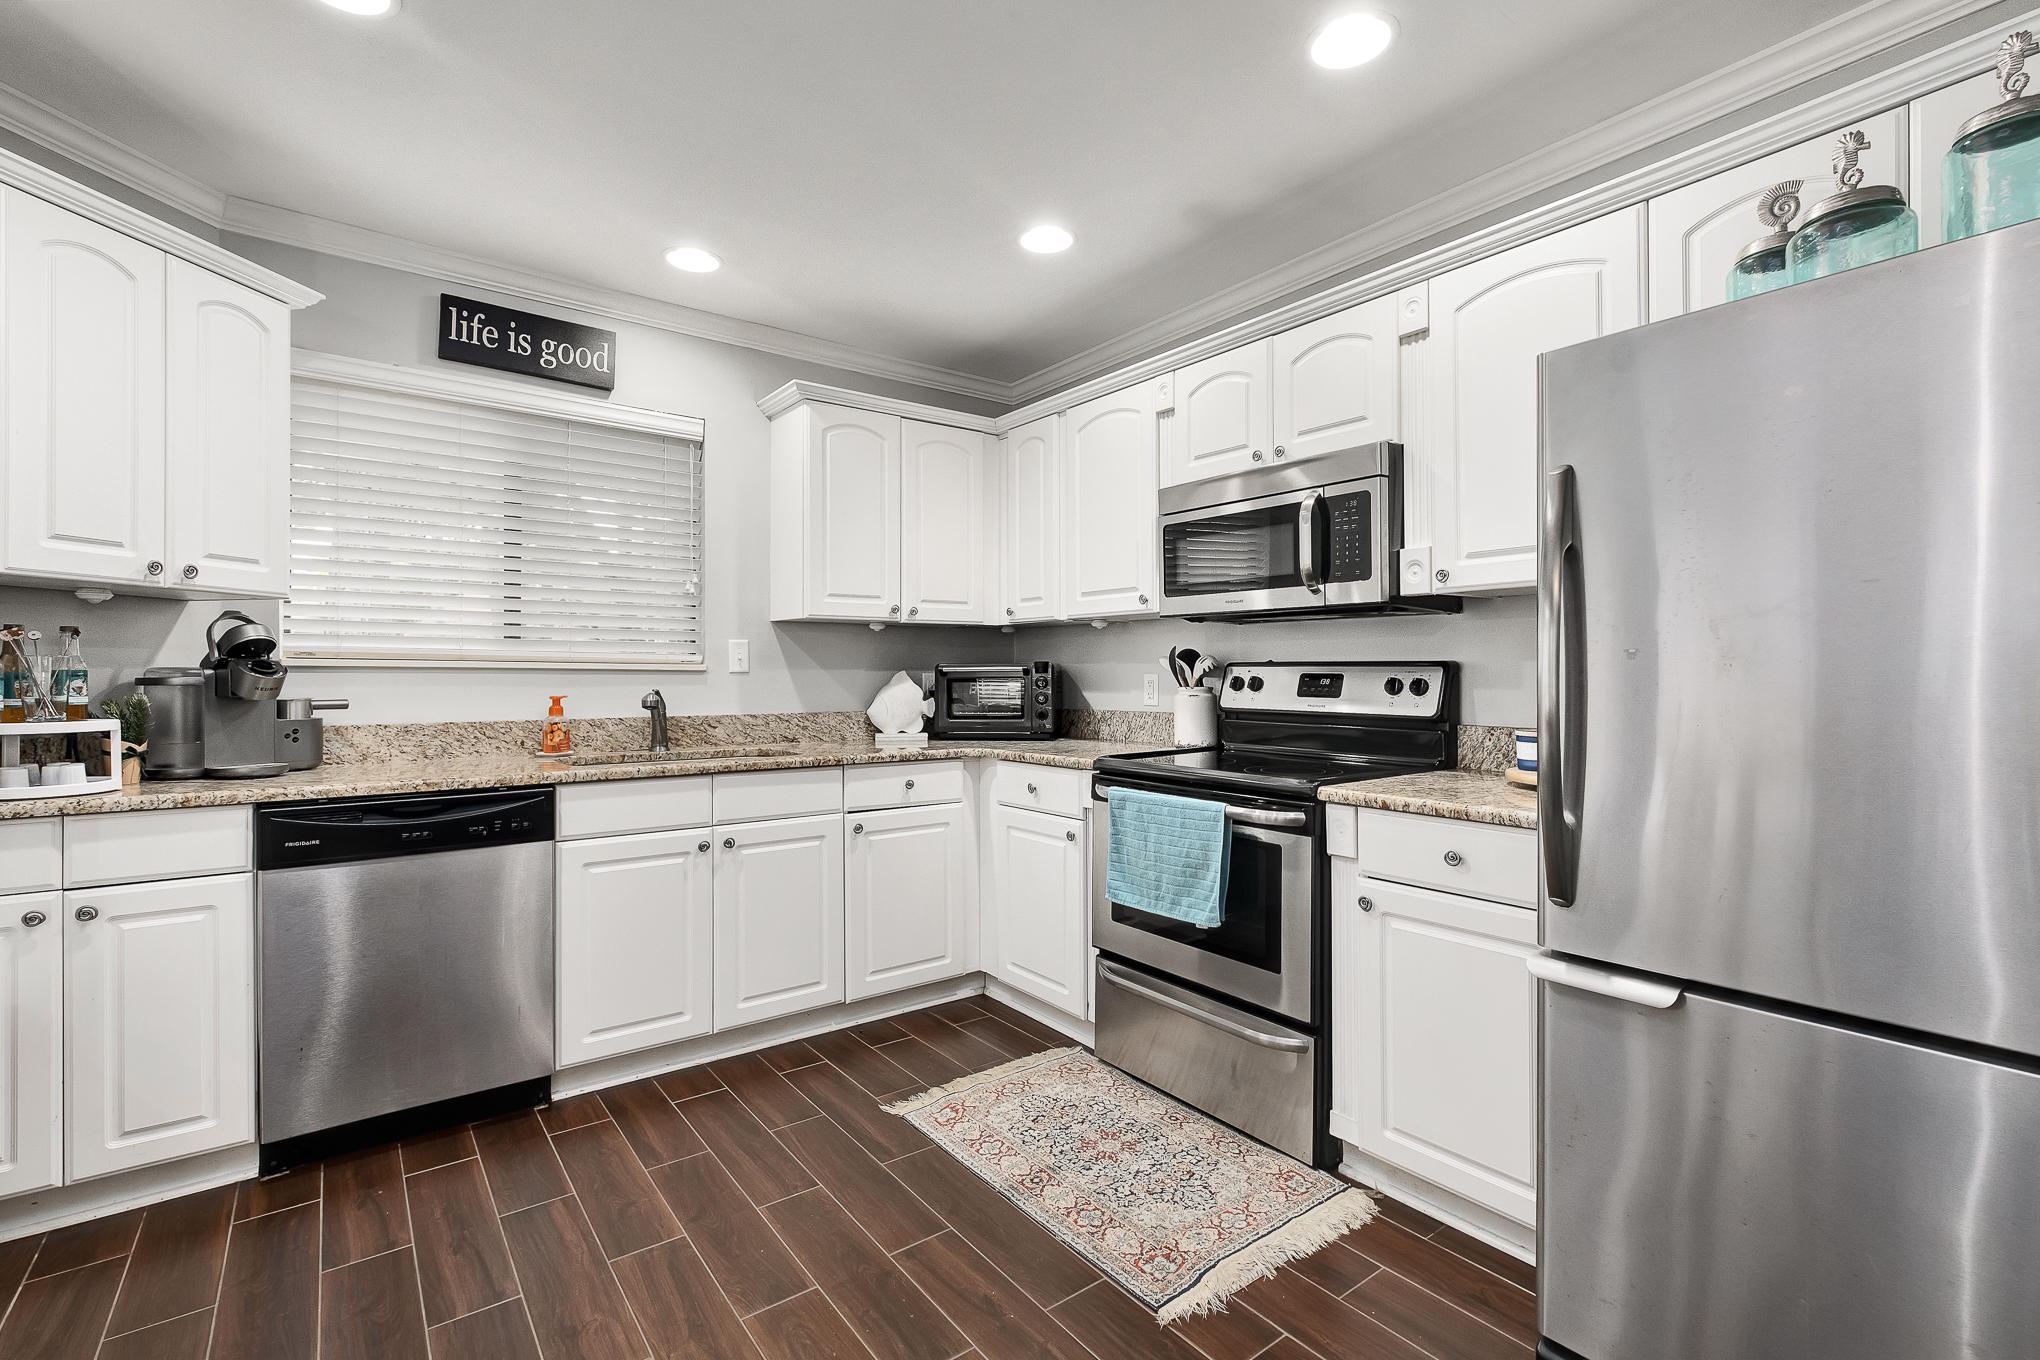 dave-warren-real-estate-photography-6